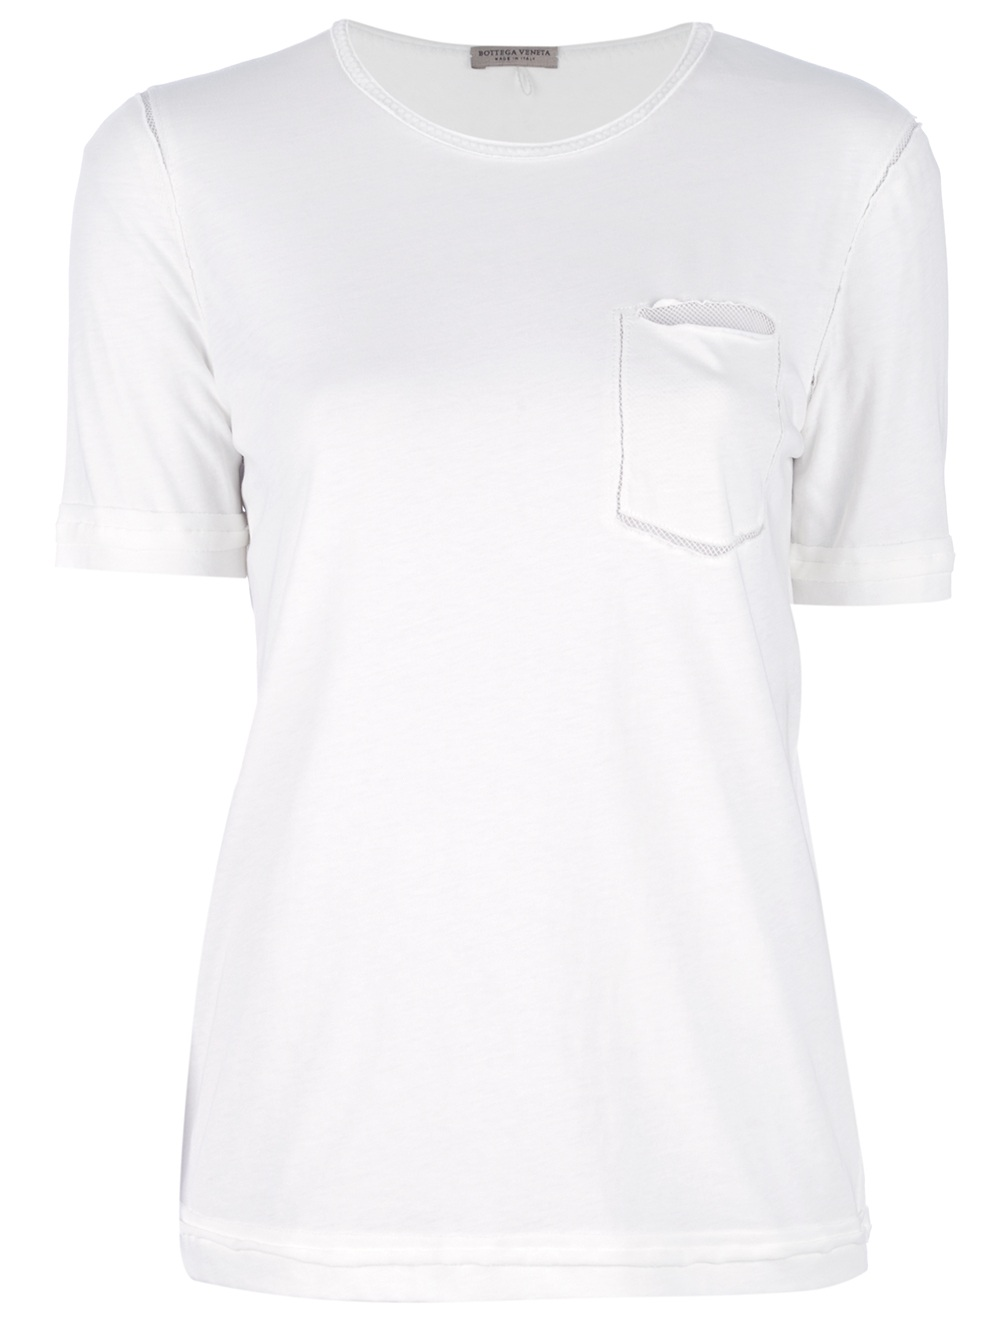 Lyst bottega veneta chest pocket tshirt in white for Bottega veneta t shirt